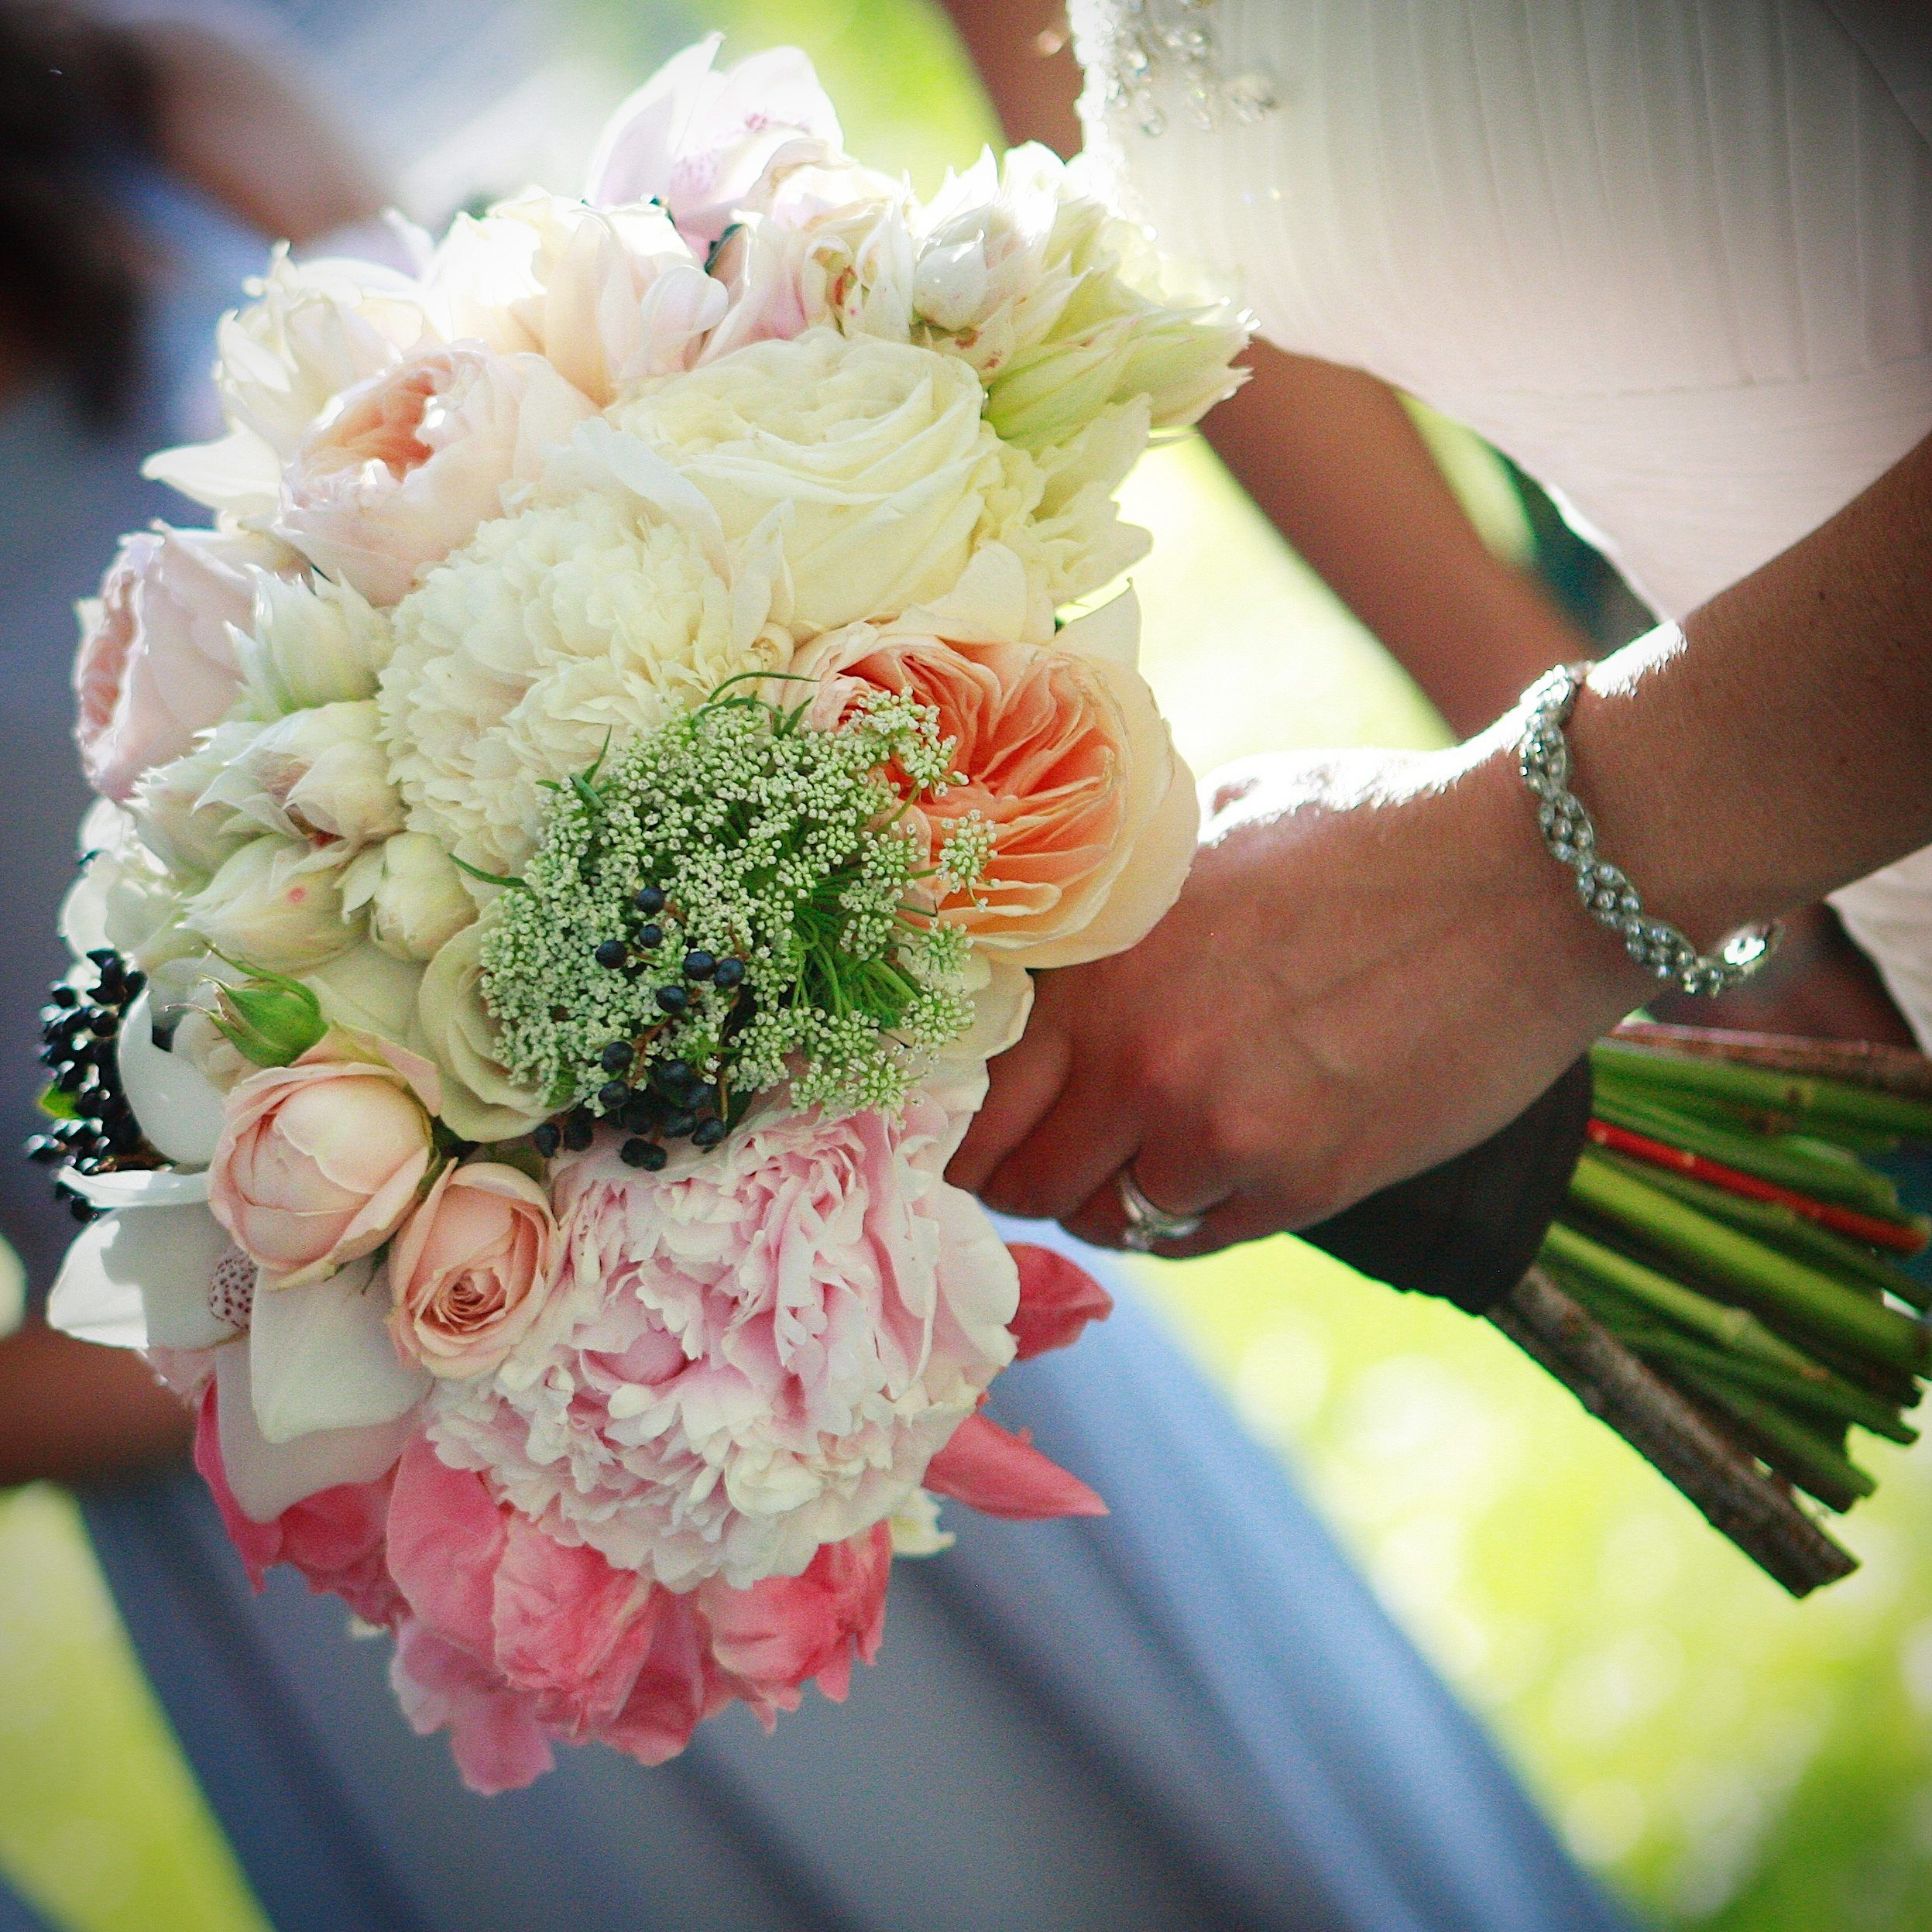 heavenly pastel bride's bouquet. perfect for june weddings with it's seasonal selection of peonies, queen anne's lace and other lush early summer flowers!